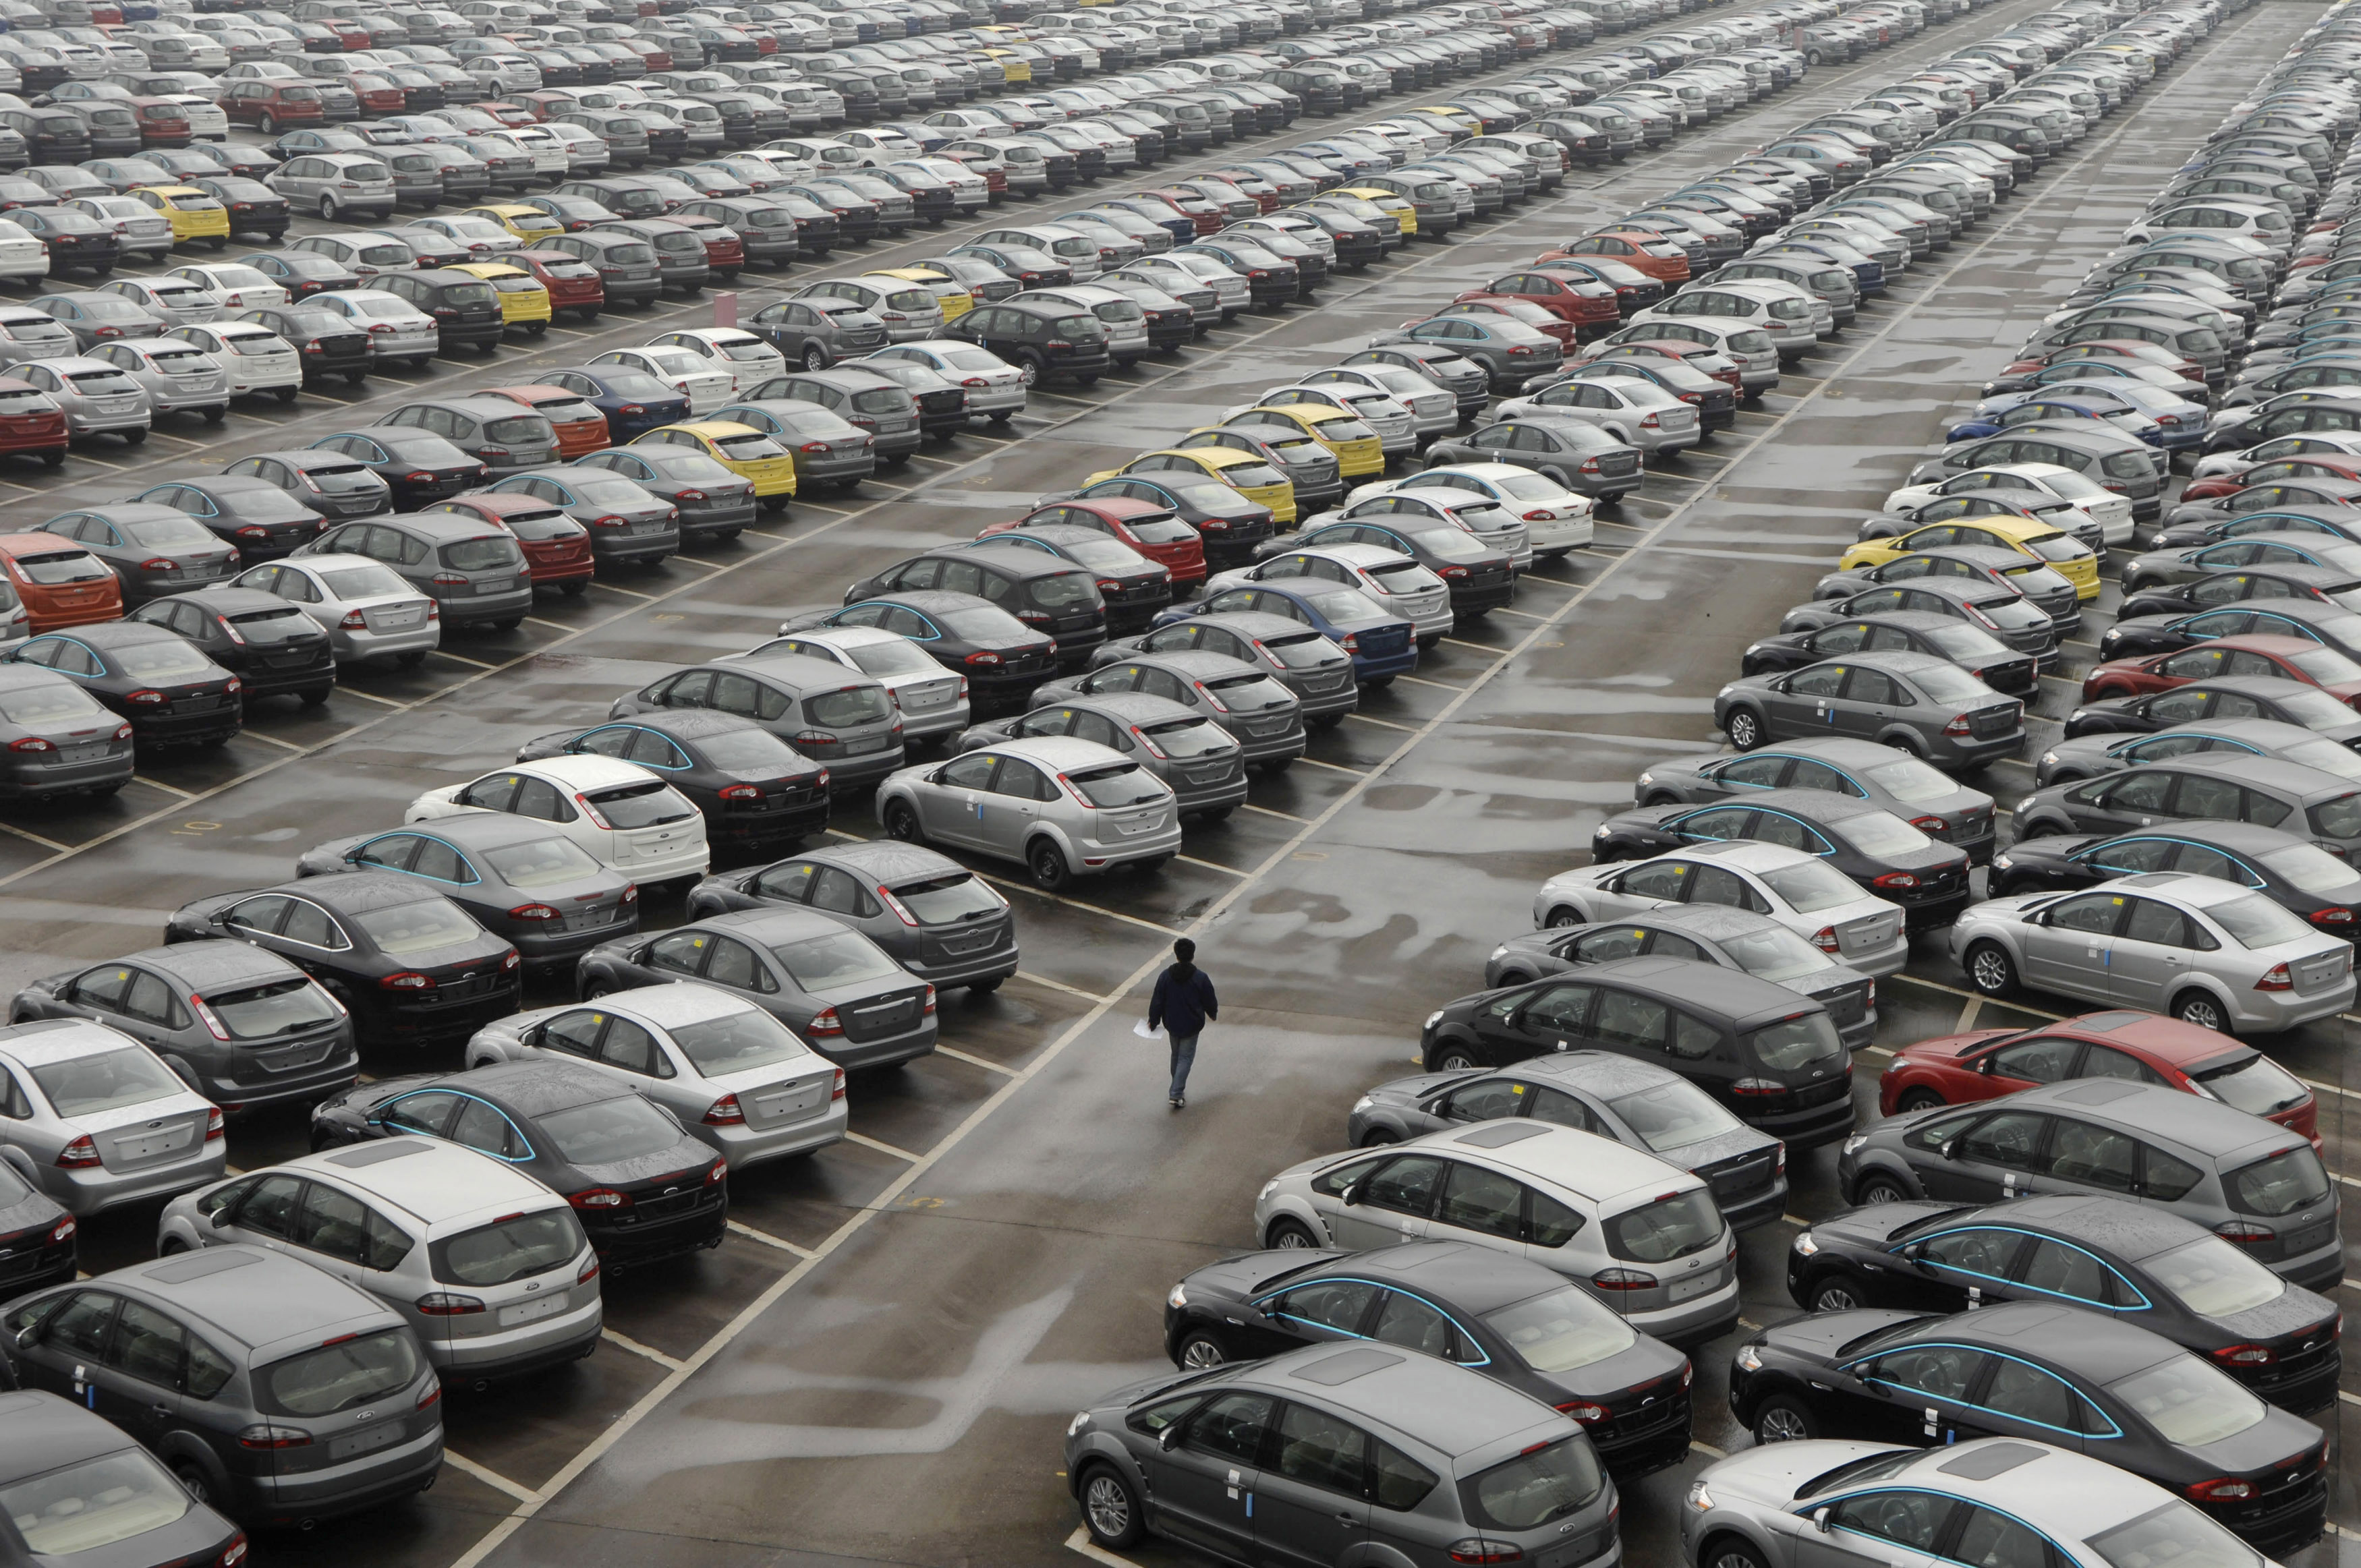 & Ford Focus Recall In China Due To Fuel Leak Risk Fire Hazard markmcfarlin.com